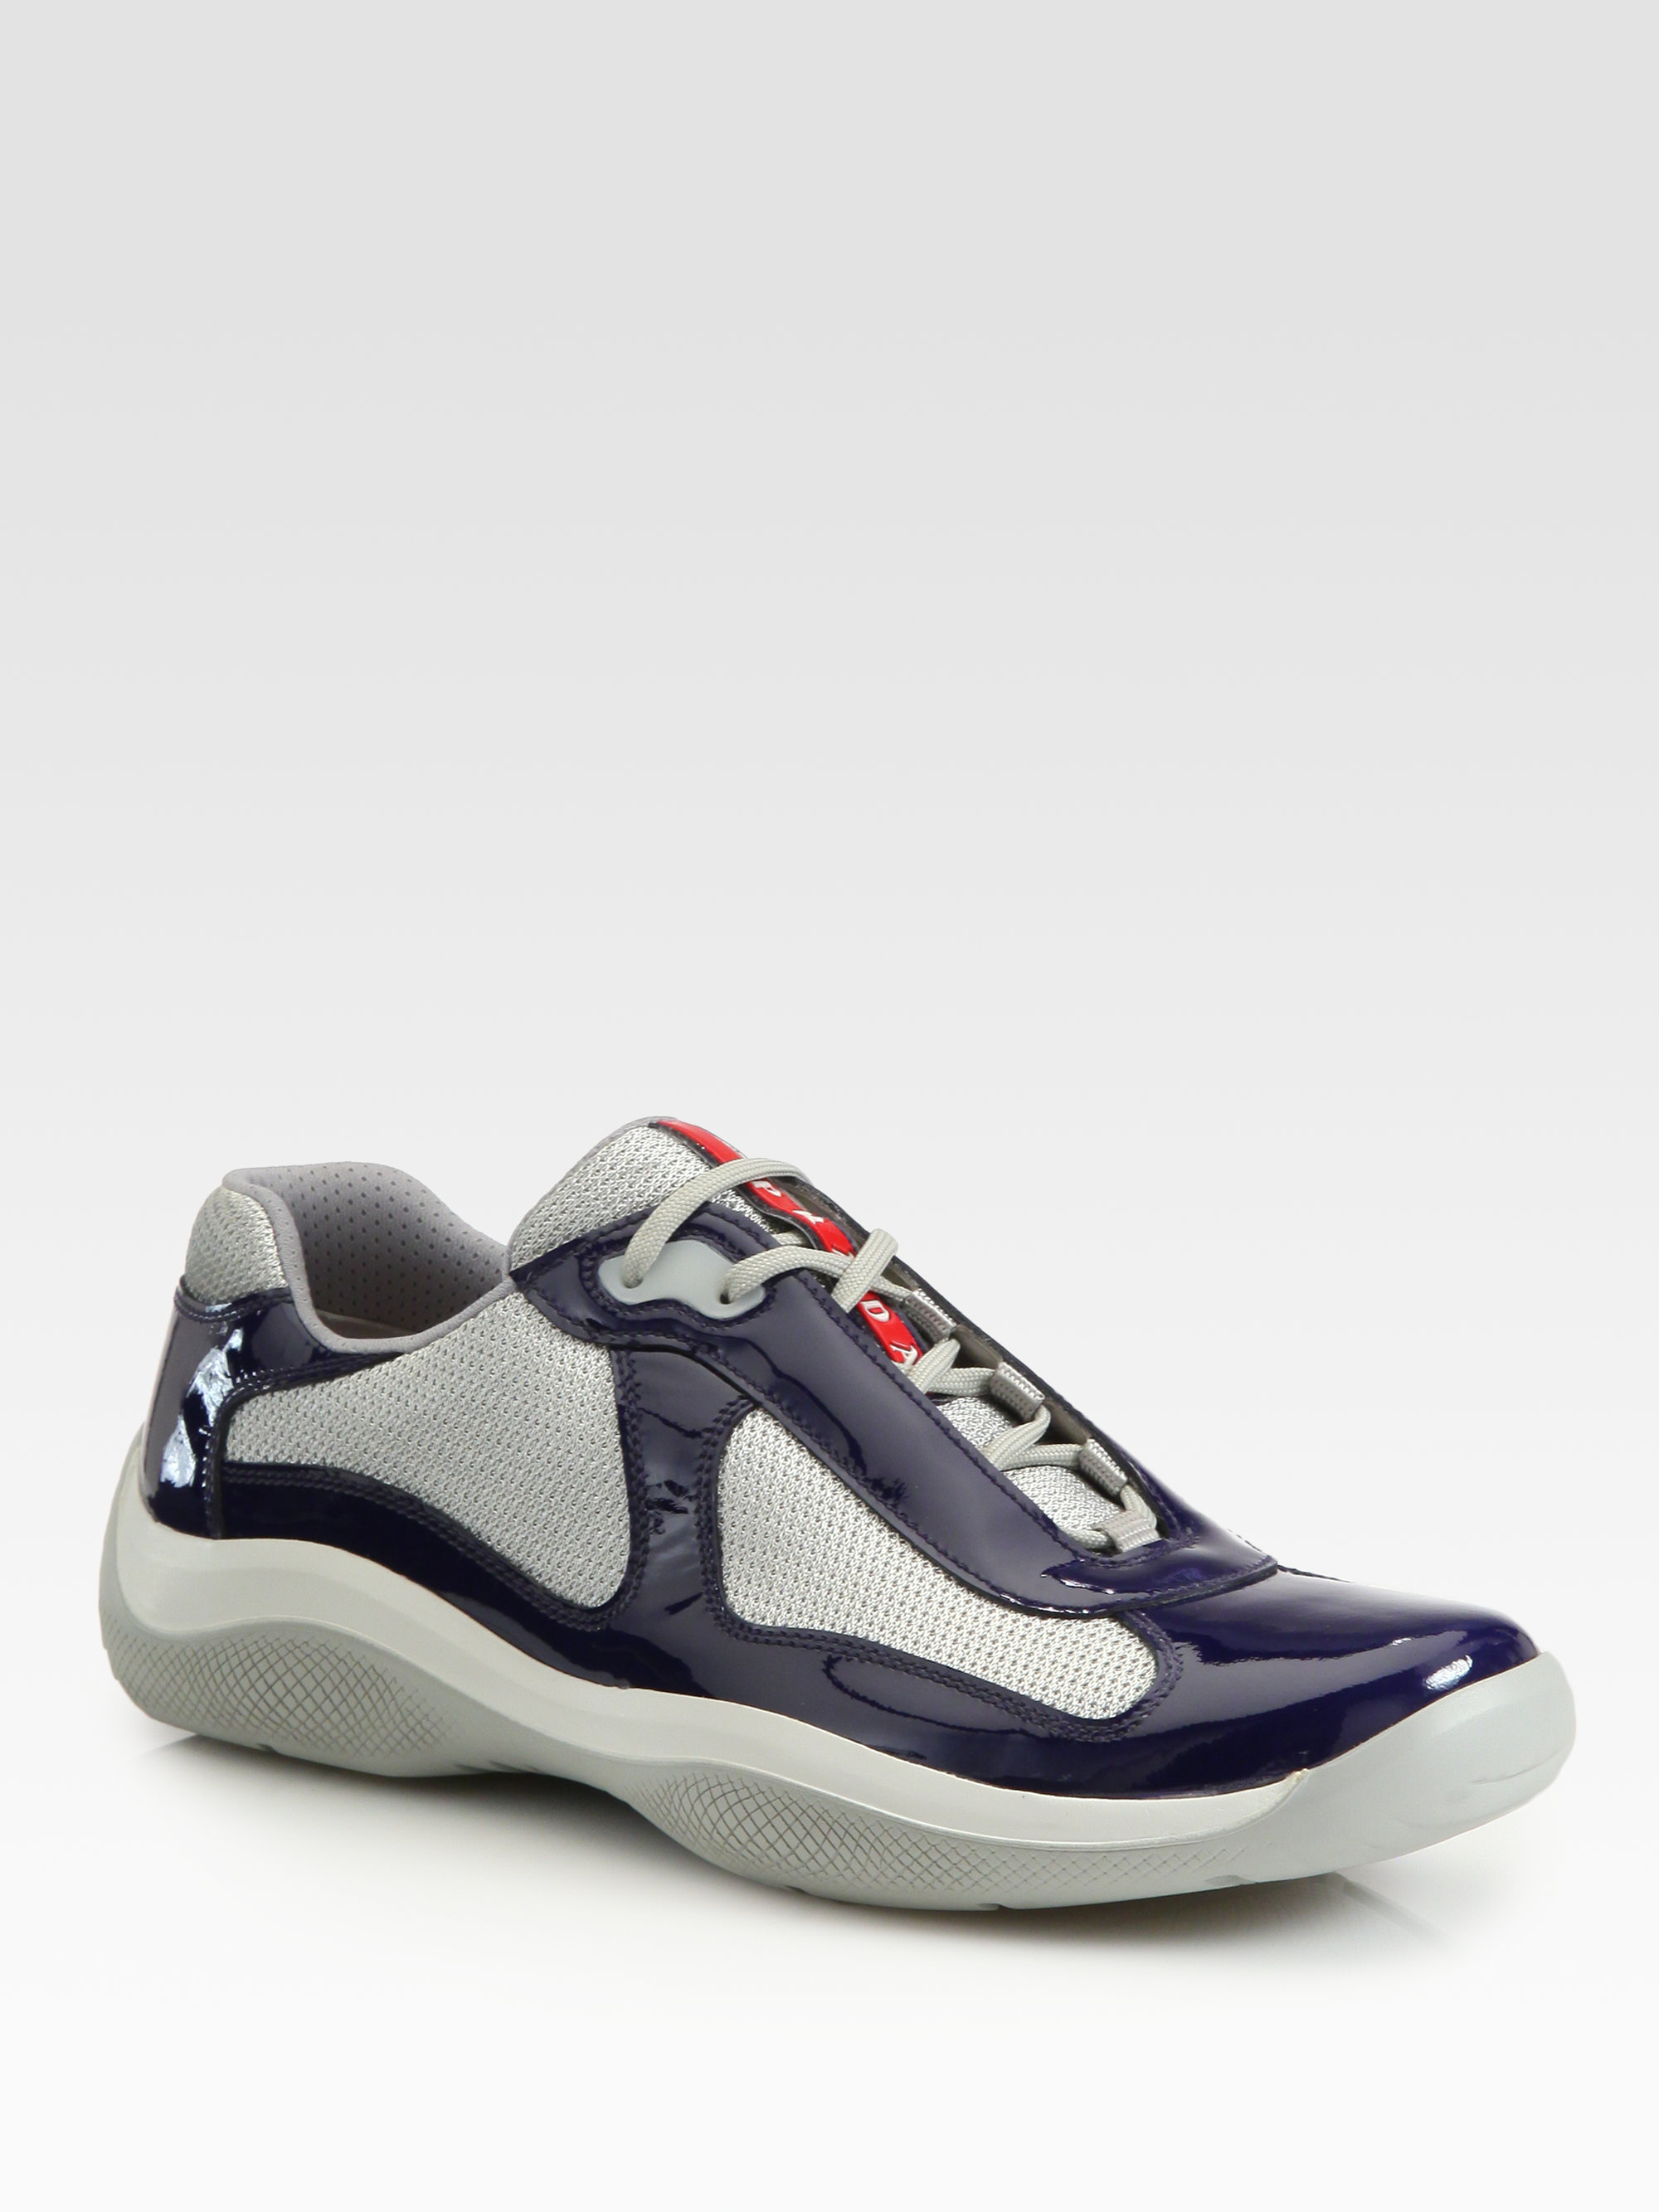 Prada Americas Cup Patent Leather Sneakers In Blue